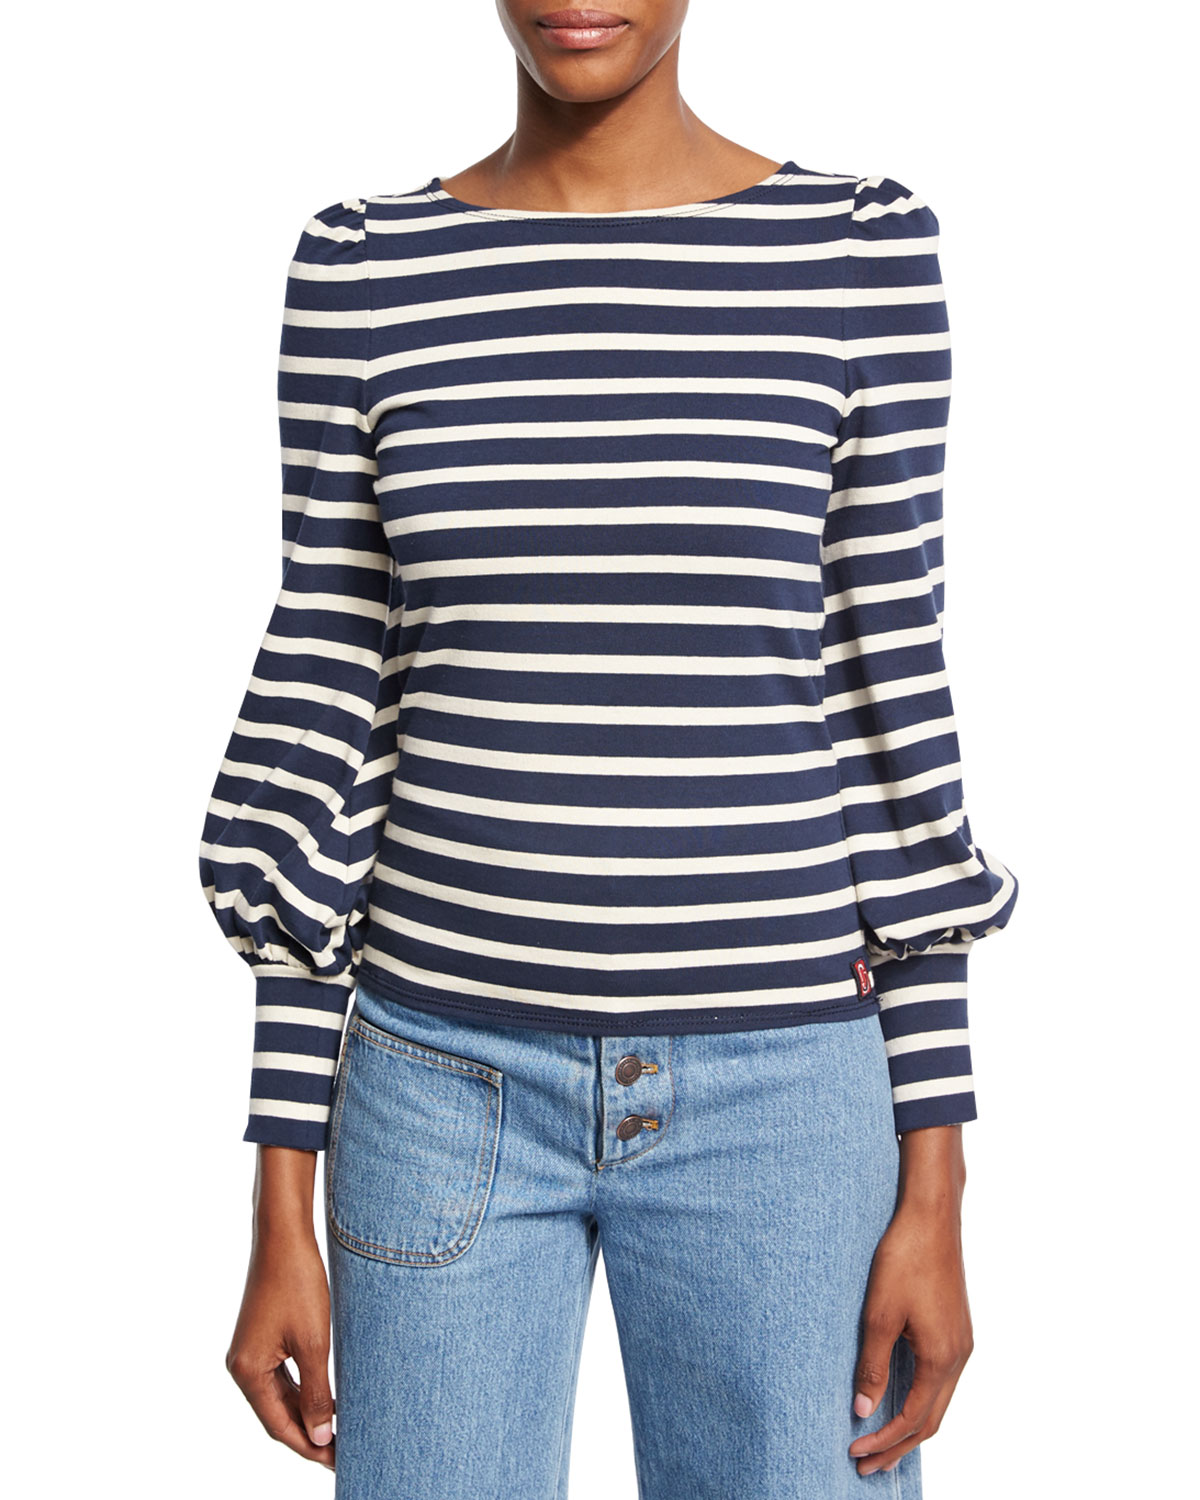 MARC JACOBS STRIPED BOAT-NECK PUFF-SLEEVE TEE, NAVY